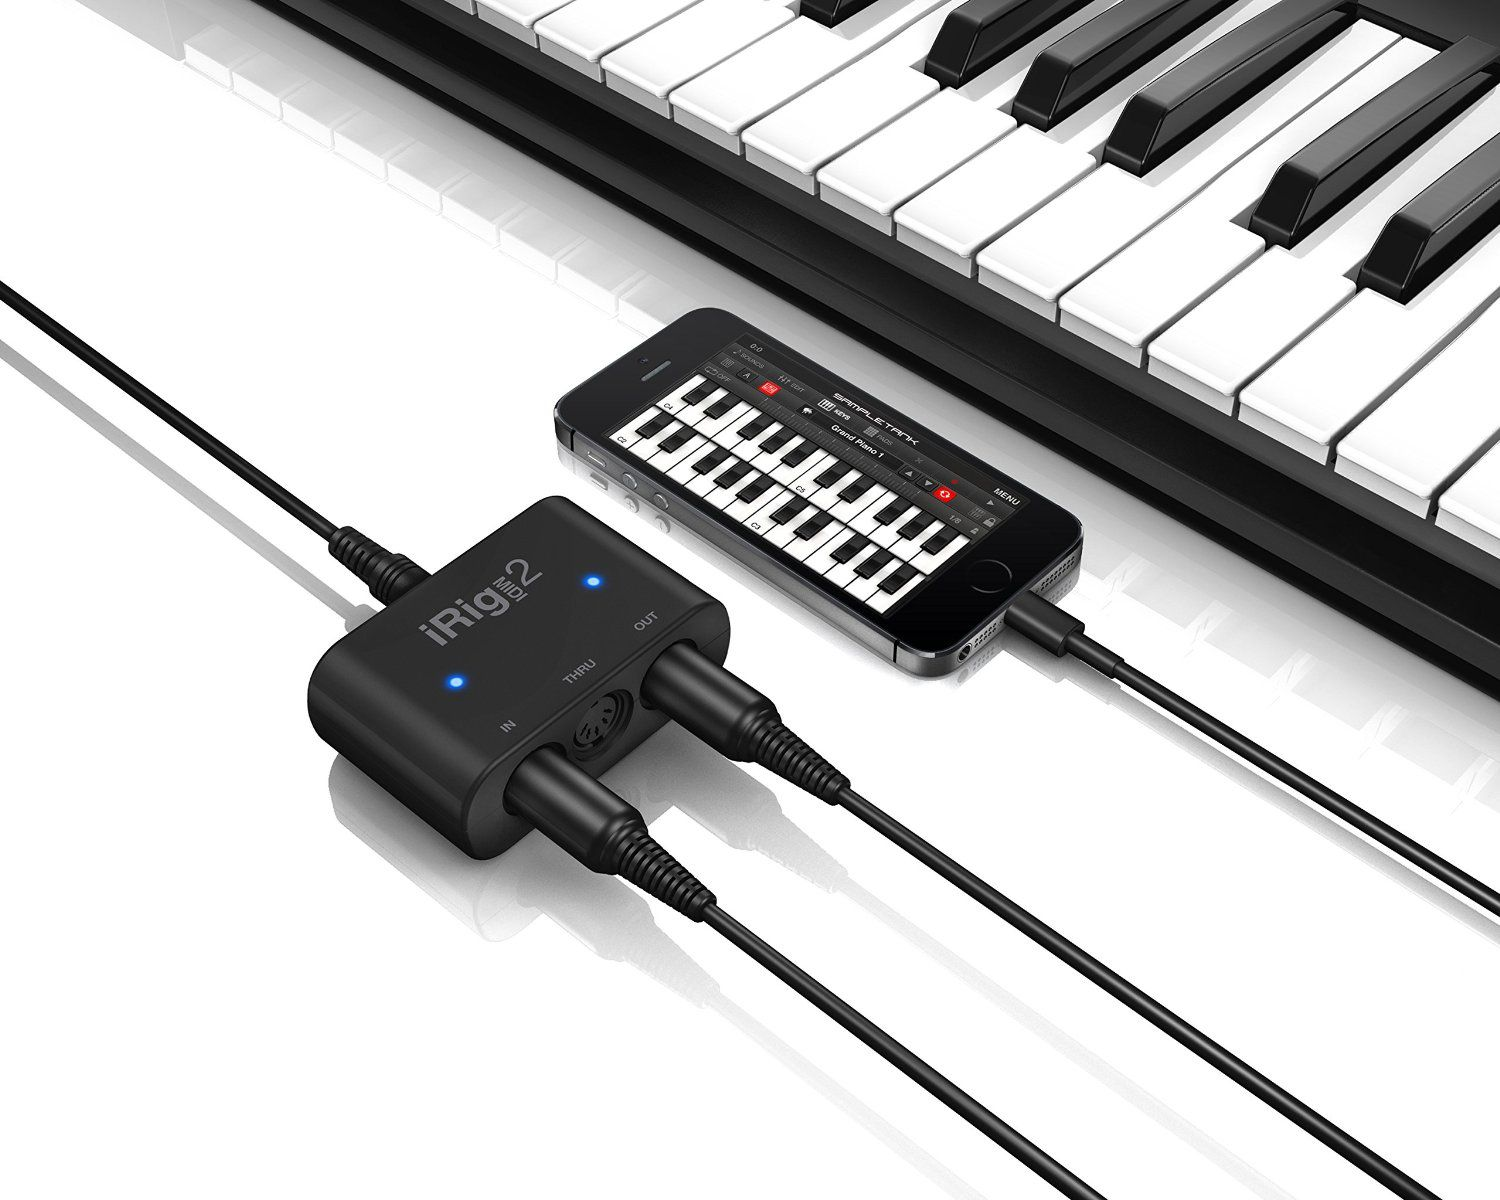 How to connect a midi controller to the ipad for Yamaha p115 midi